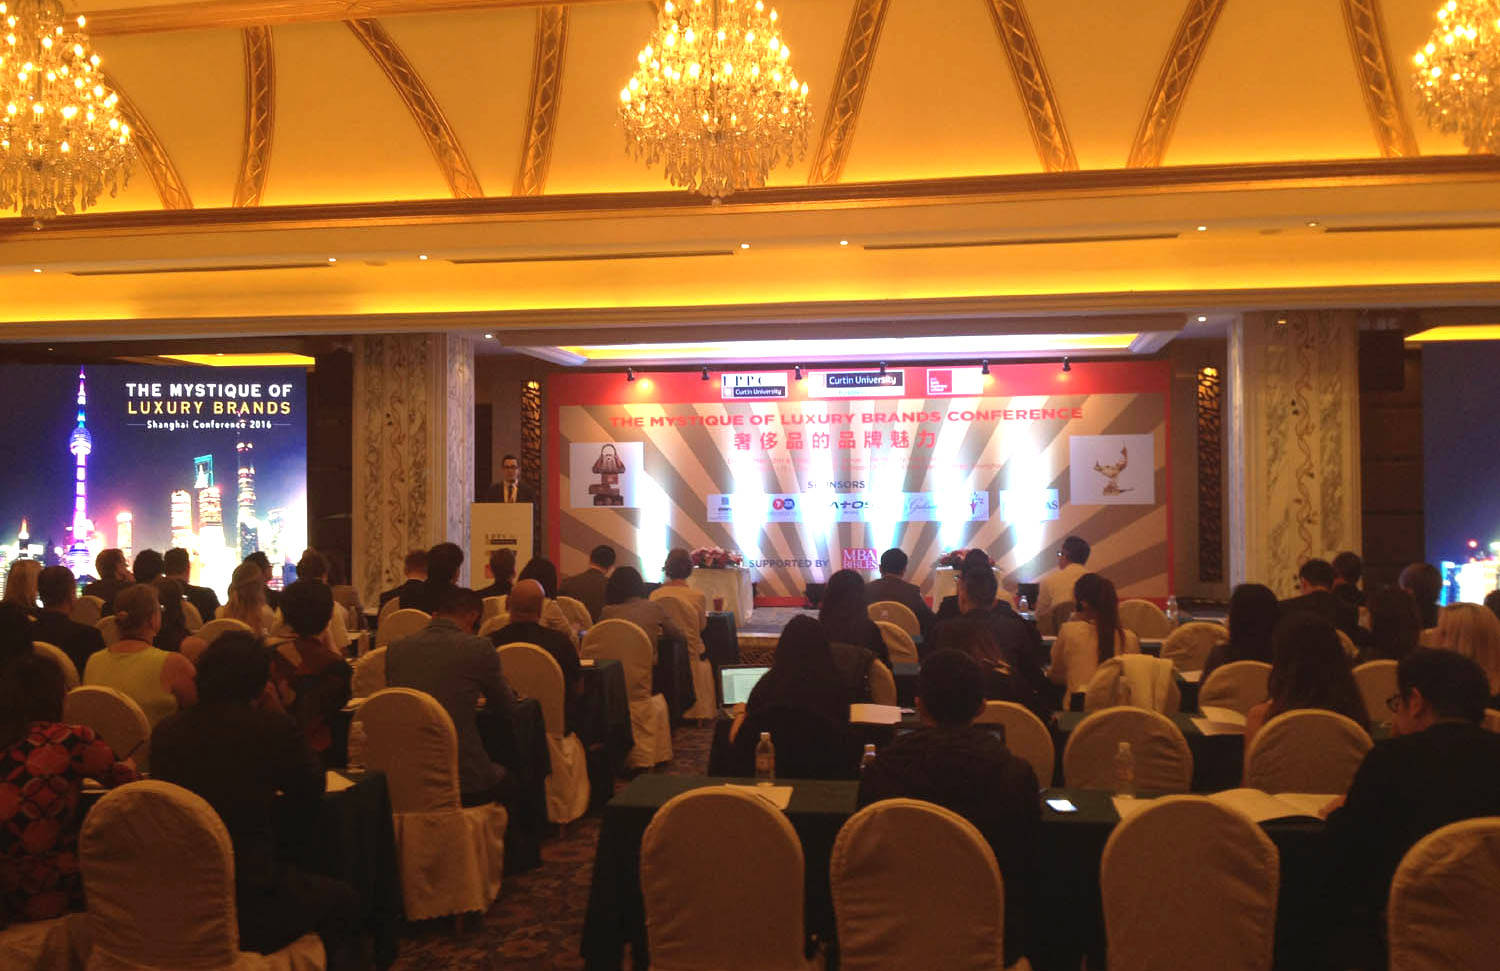 Mystique of Luxury Brands Conference Shanghai feature in The West Australian